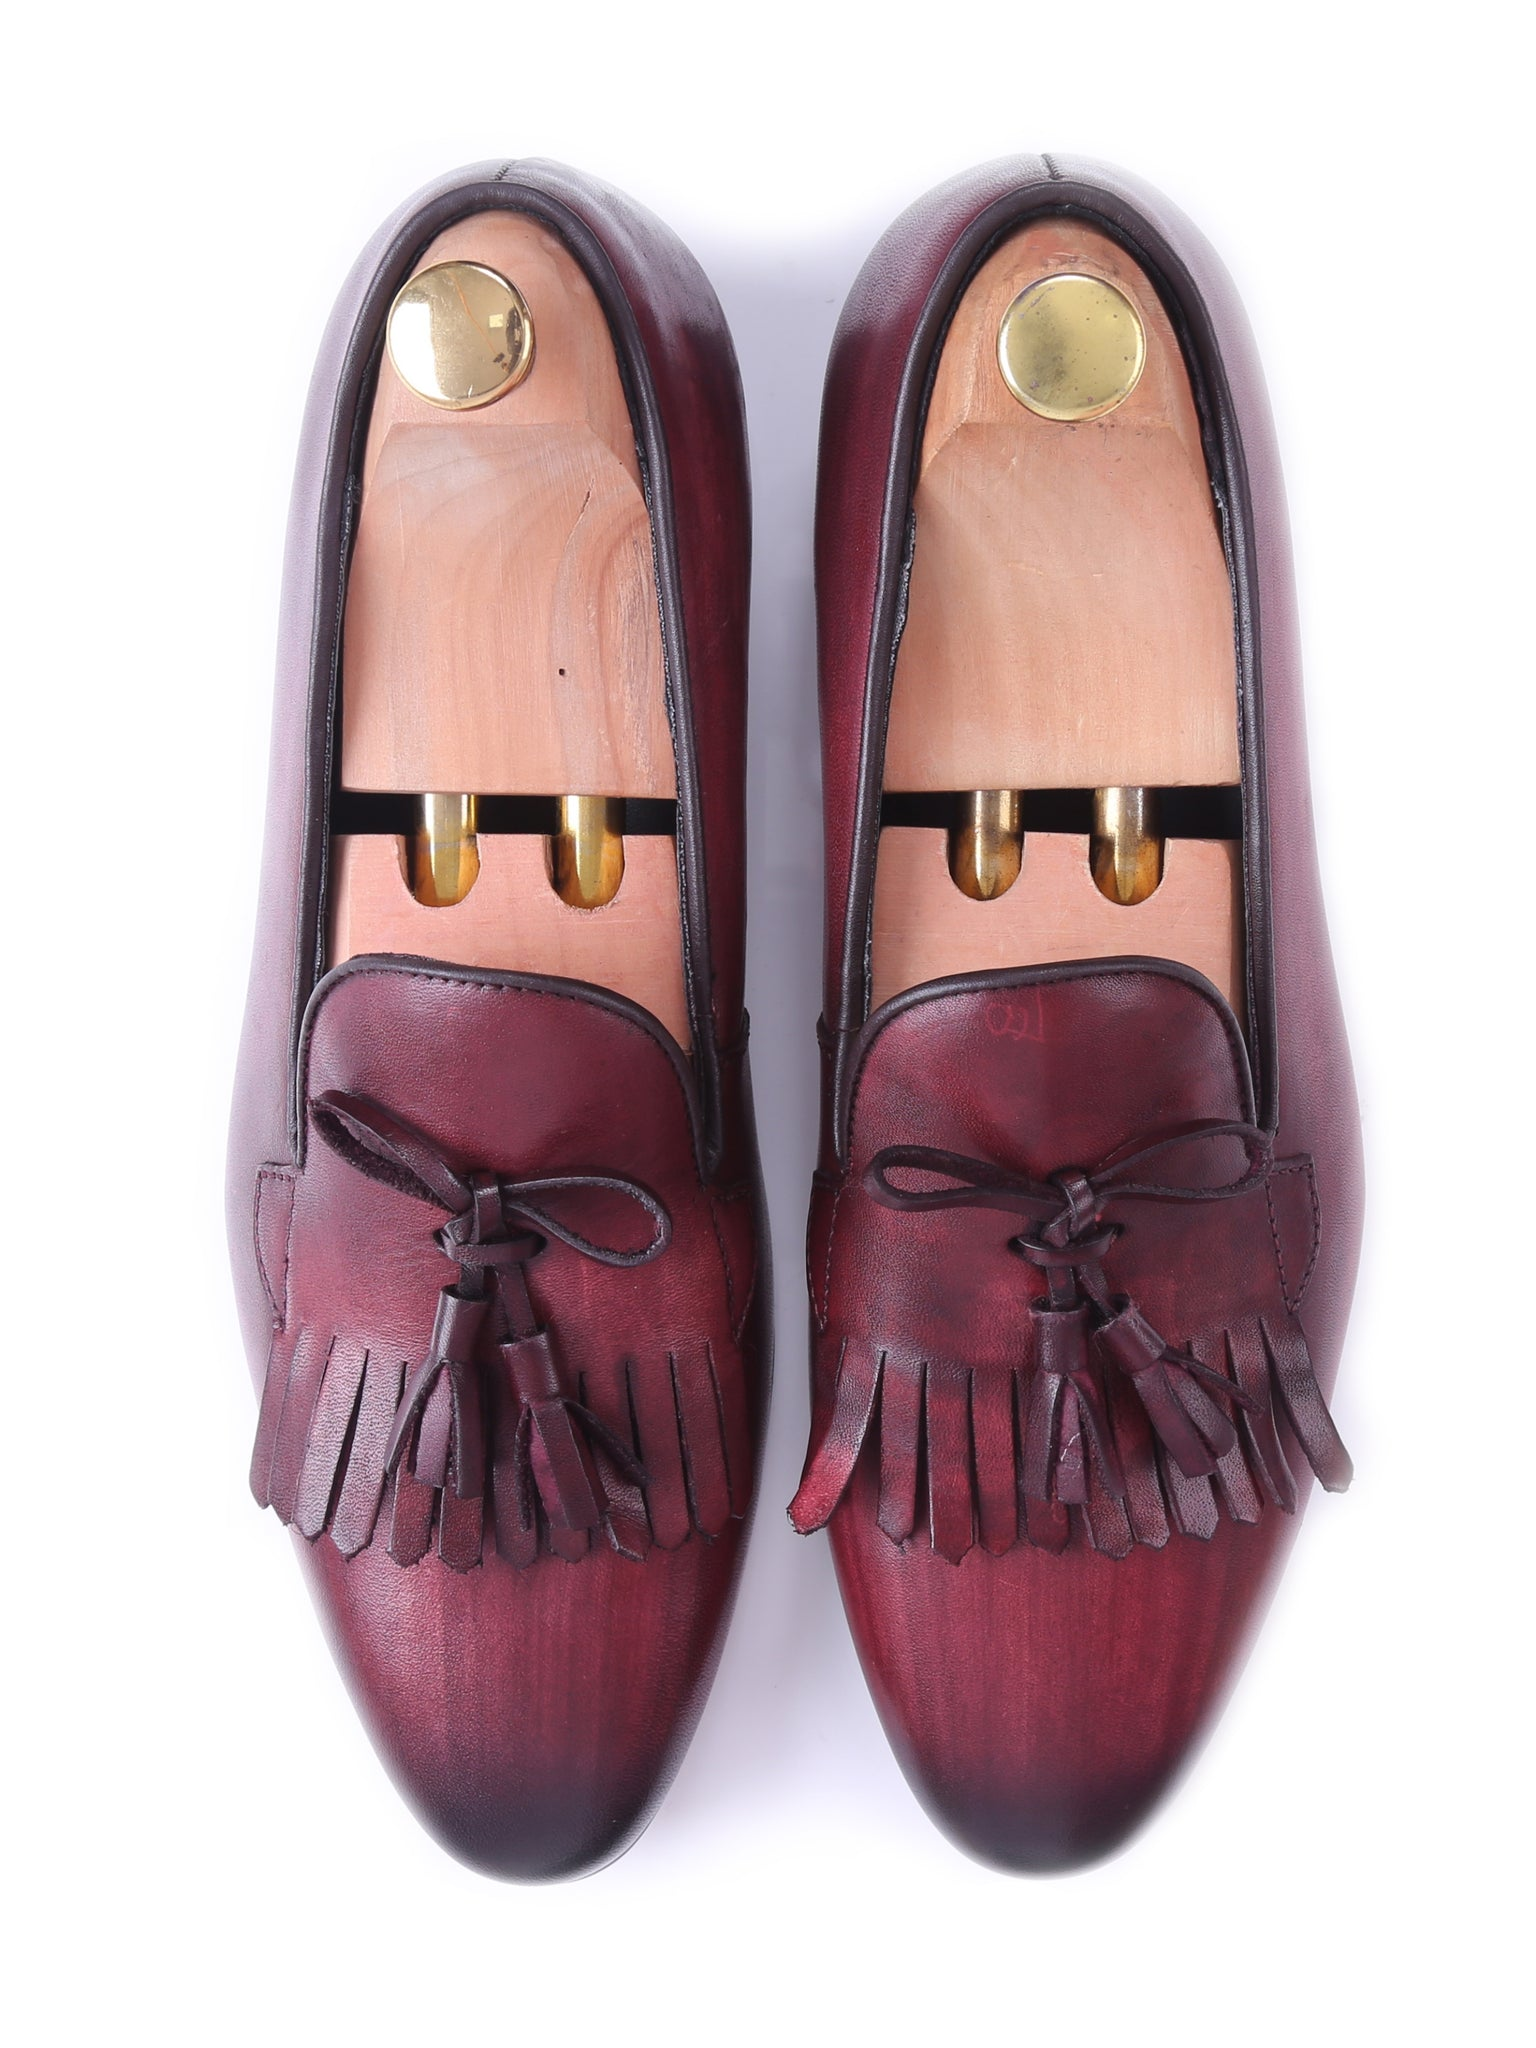 Shoes Loafer Slipper - Red Burgundy With Fringe Tassel (Hand Painted Patina)